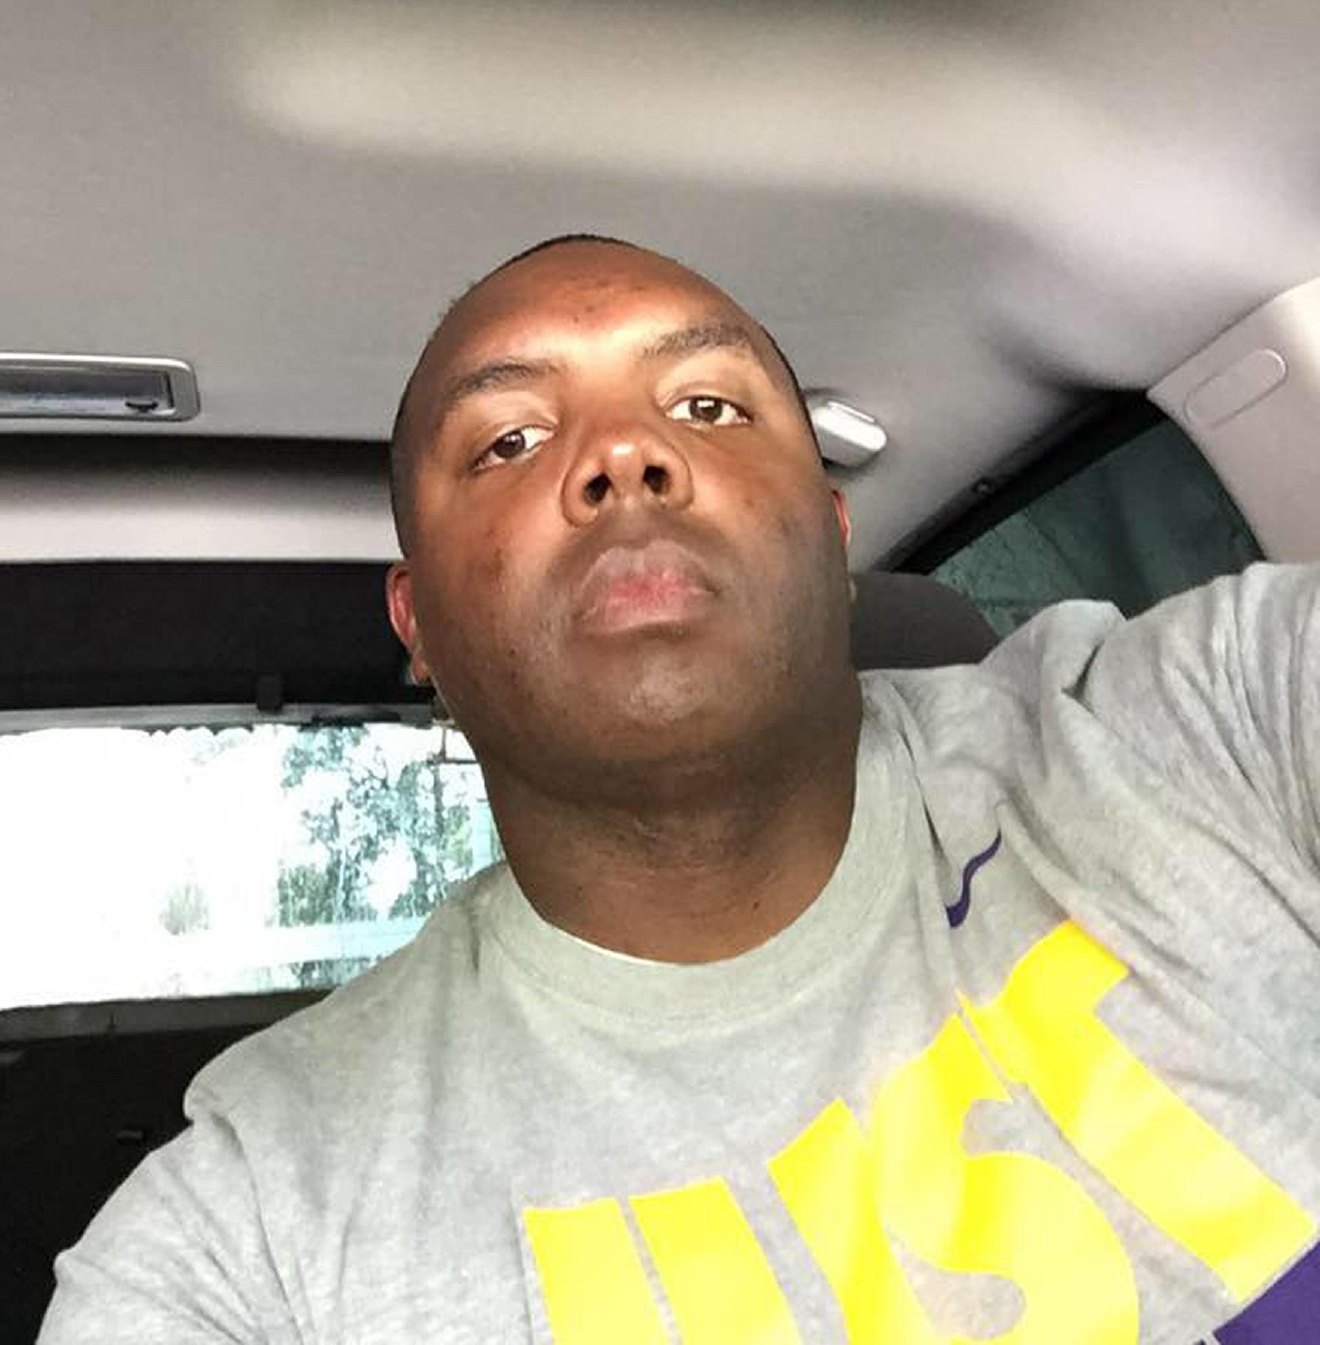 This undated photo taken from Baton Rouge Police Officer Montrell Jackson's Facebook page shows Jackson in a vehicle. Jackson and two other Baton Rouge law enforcement officers investigating a report of a man with an assault rifle were killed Sunday, July 17, 2016, less than two weeks after a black man was fatally shot by police here in a confrontation that sparked nightly protests that reverberated nationwide. (Facebook via AP)